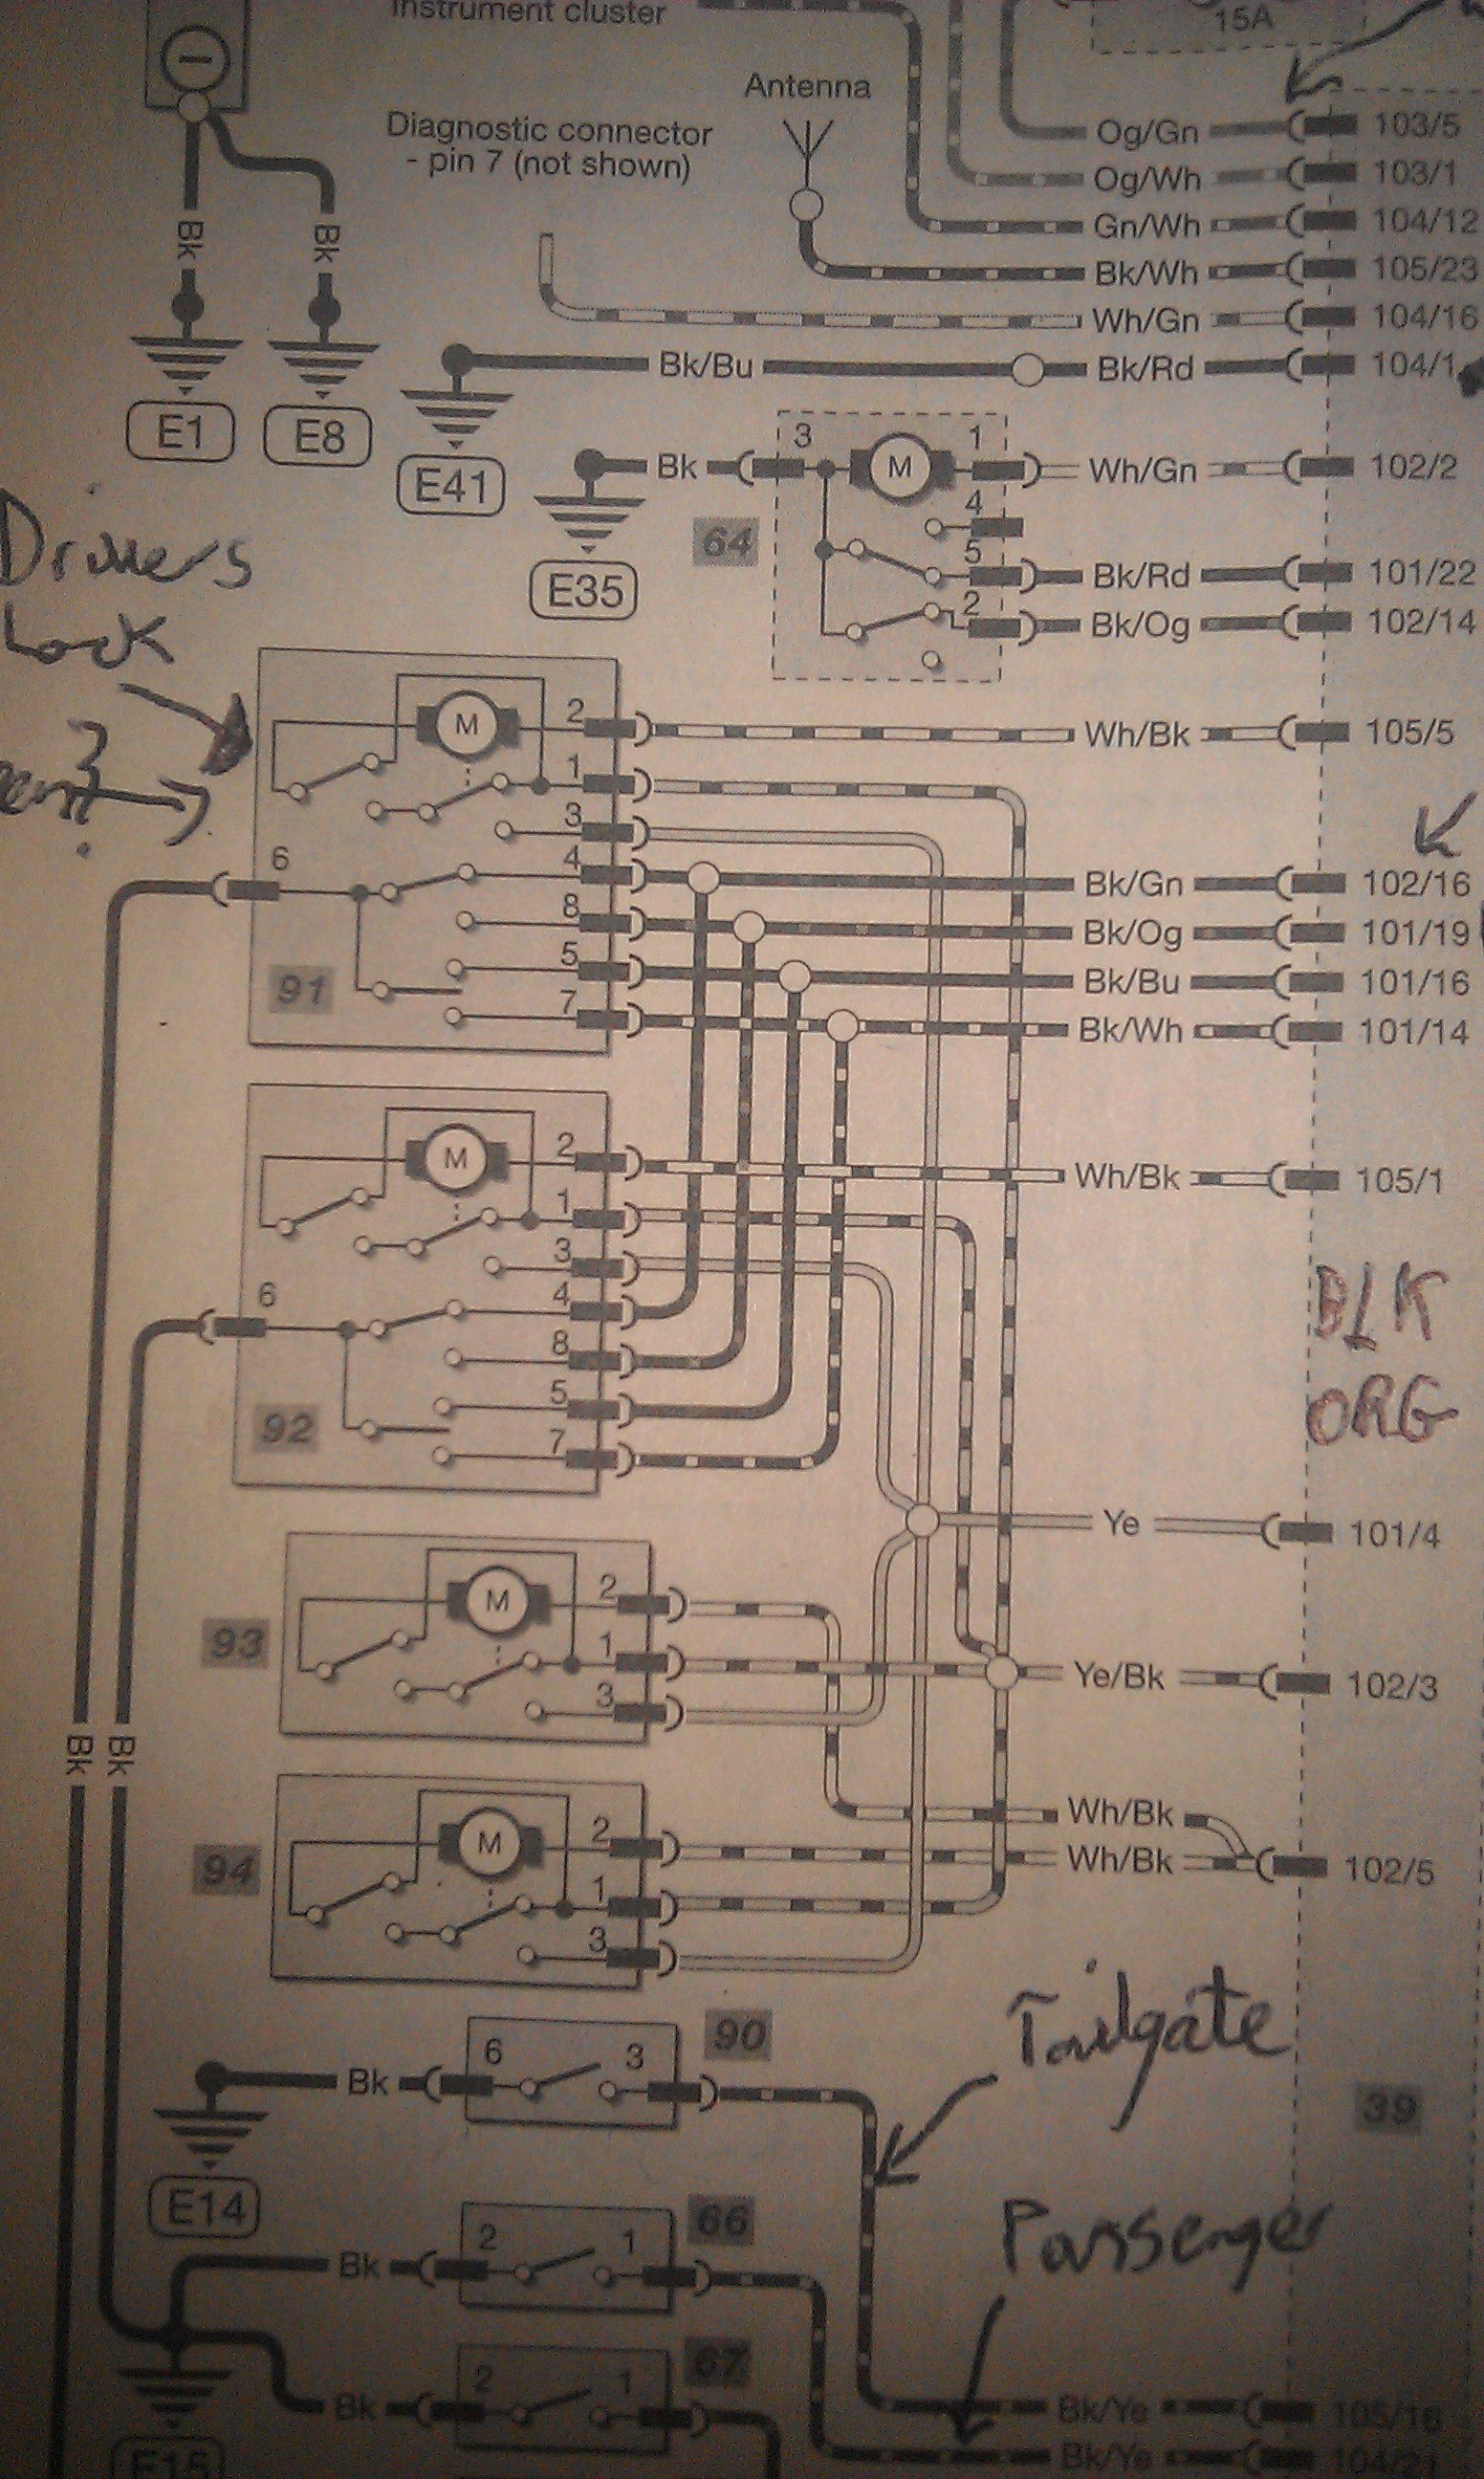 Confused! Mk 1.5 wiring on Gem for aftermarket locking kit. - Ford Focus  Club - Ford Owners Club - Ford Forums | Focus Central Locking Wiring Diagram |  | Ford Owners Club